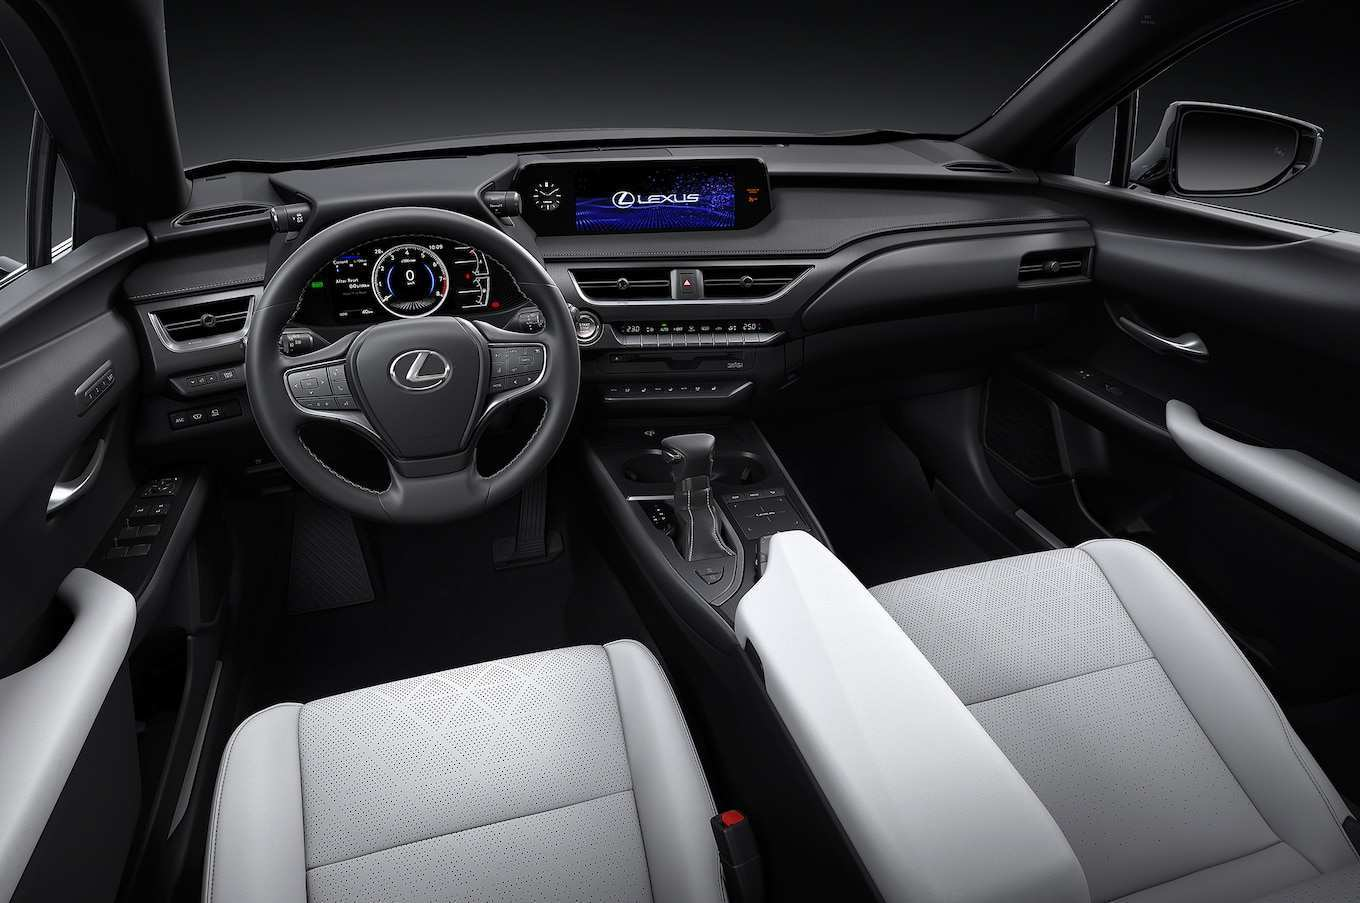 58 All New 2019 Lexus Gs Interior Performance by 2019 Lexus Gs Interior